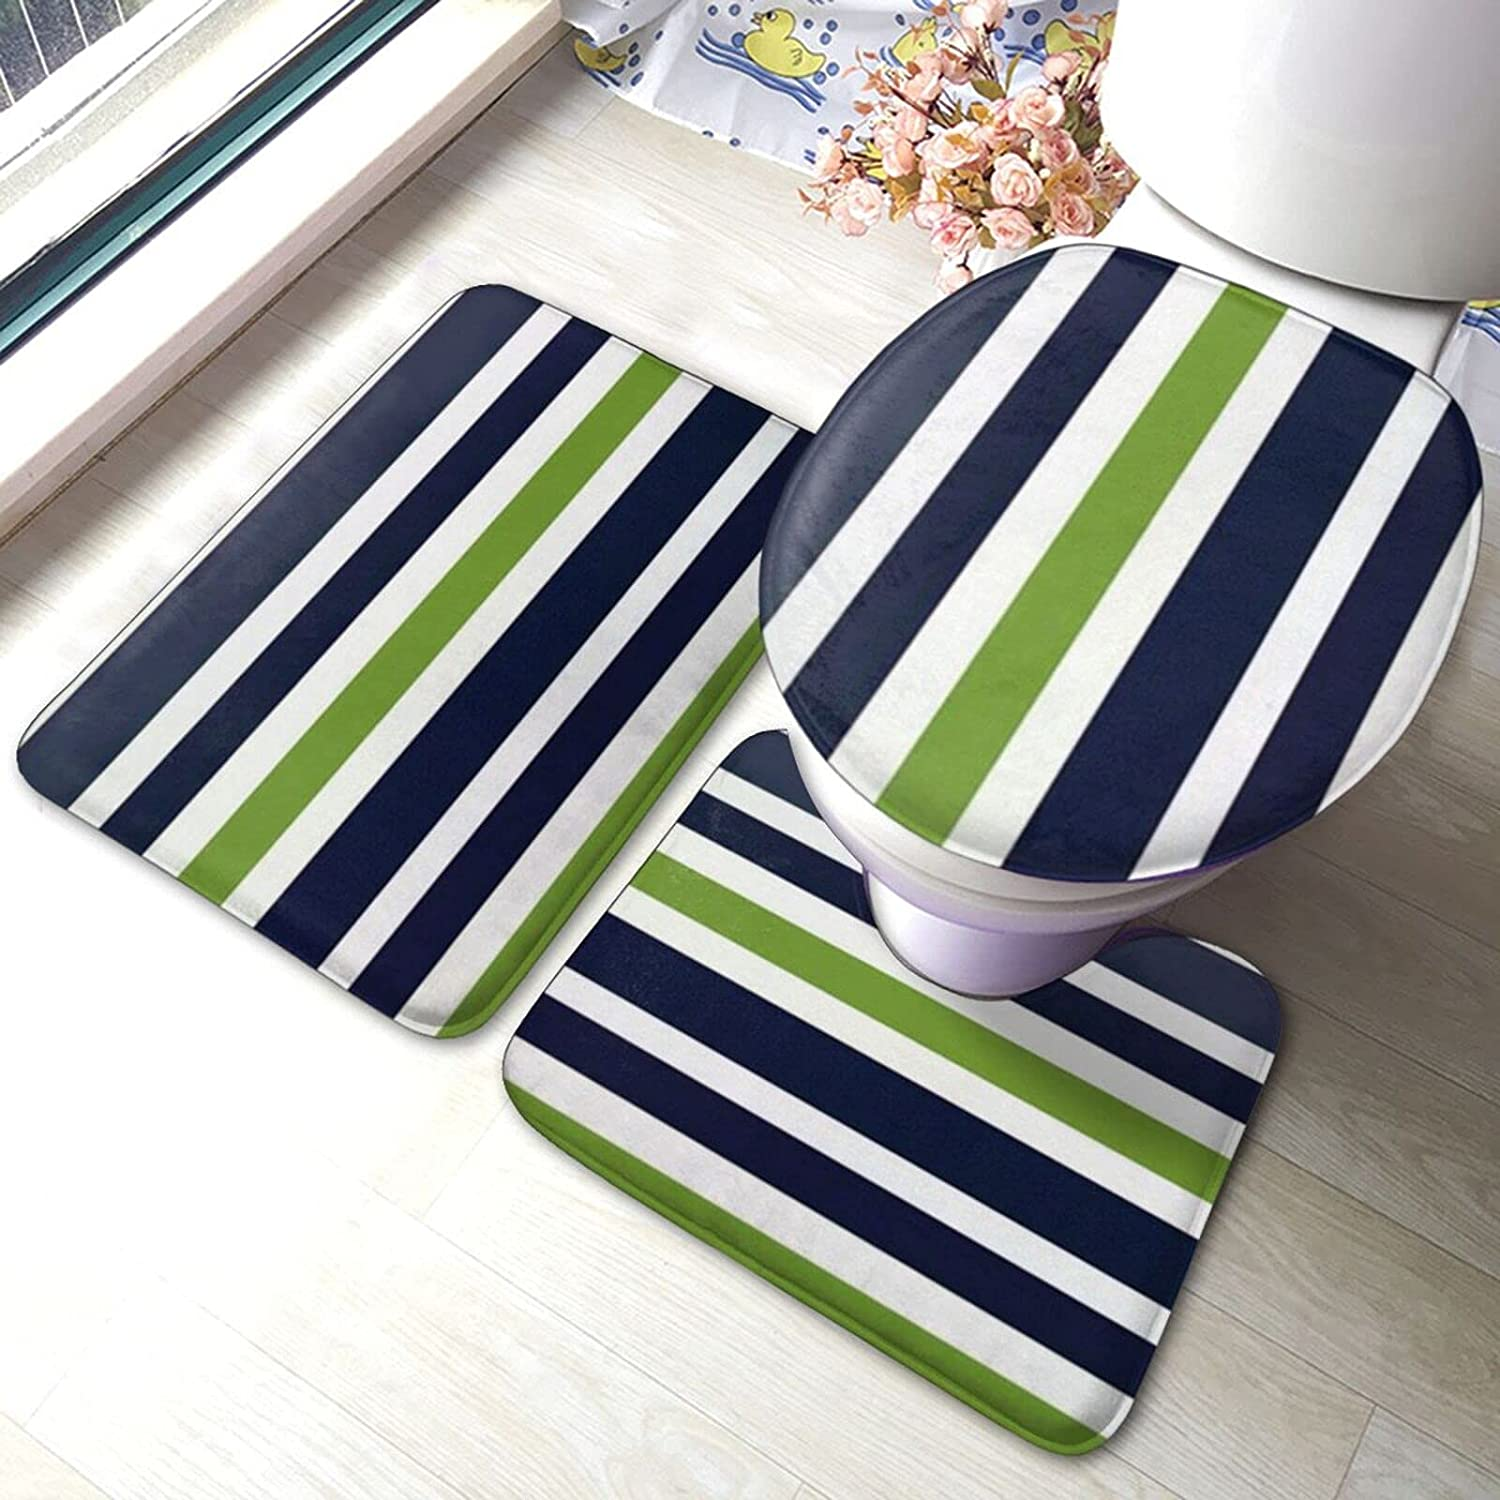 Bathroom Save money Antiskid Pad 3 Pieces Rugs All items free shipping 15.7x23.6inch Set